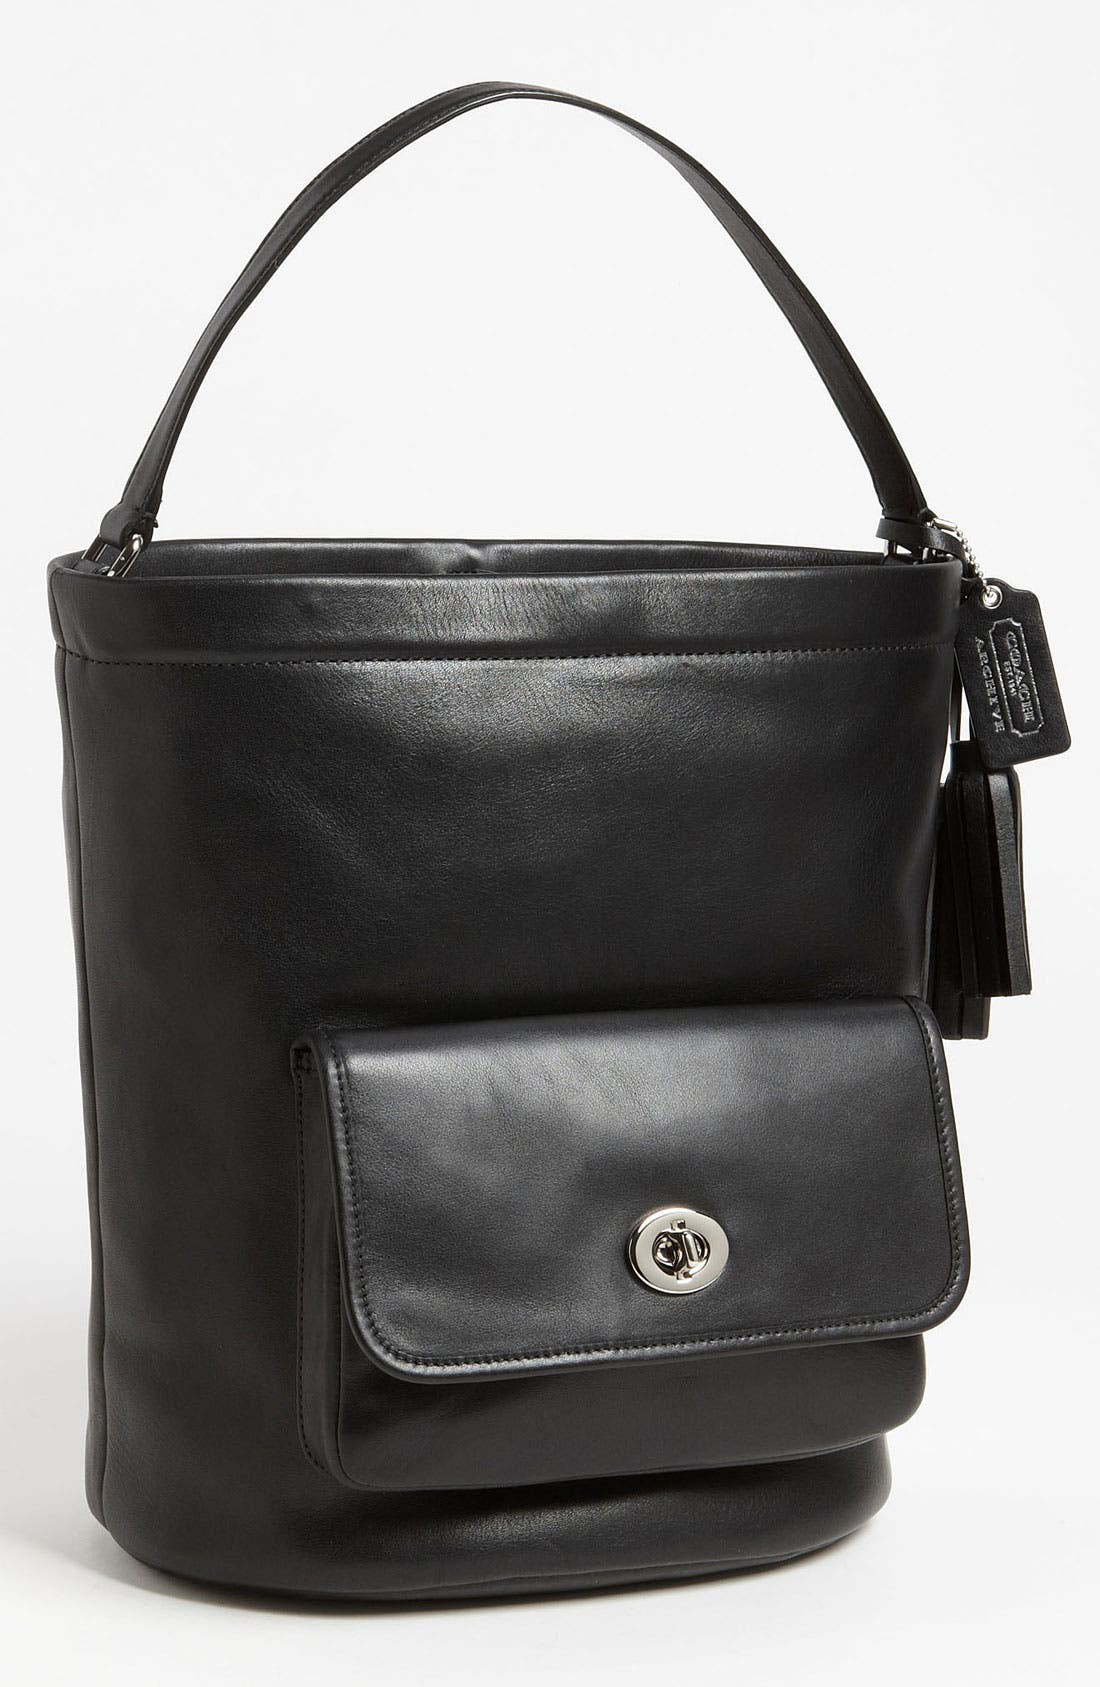 Alternate Image 1 Selected - COACH 'Legacy - Archival' Bucket Bag